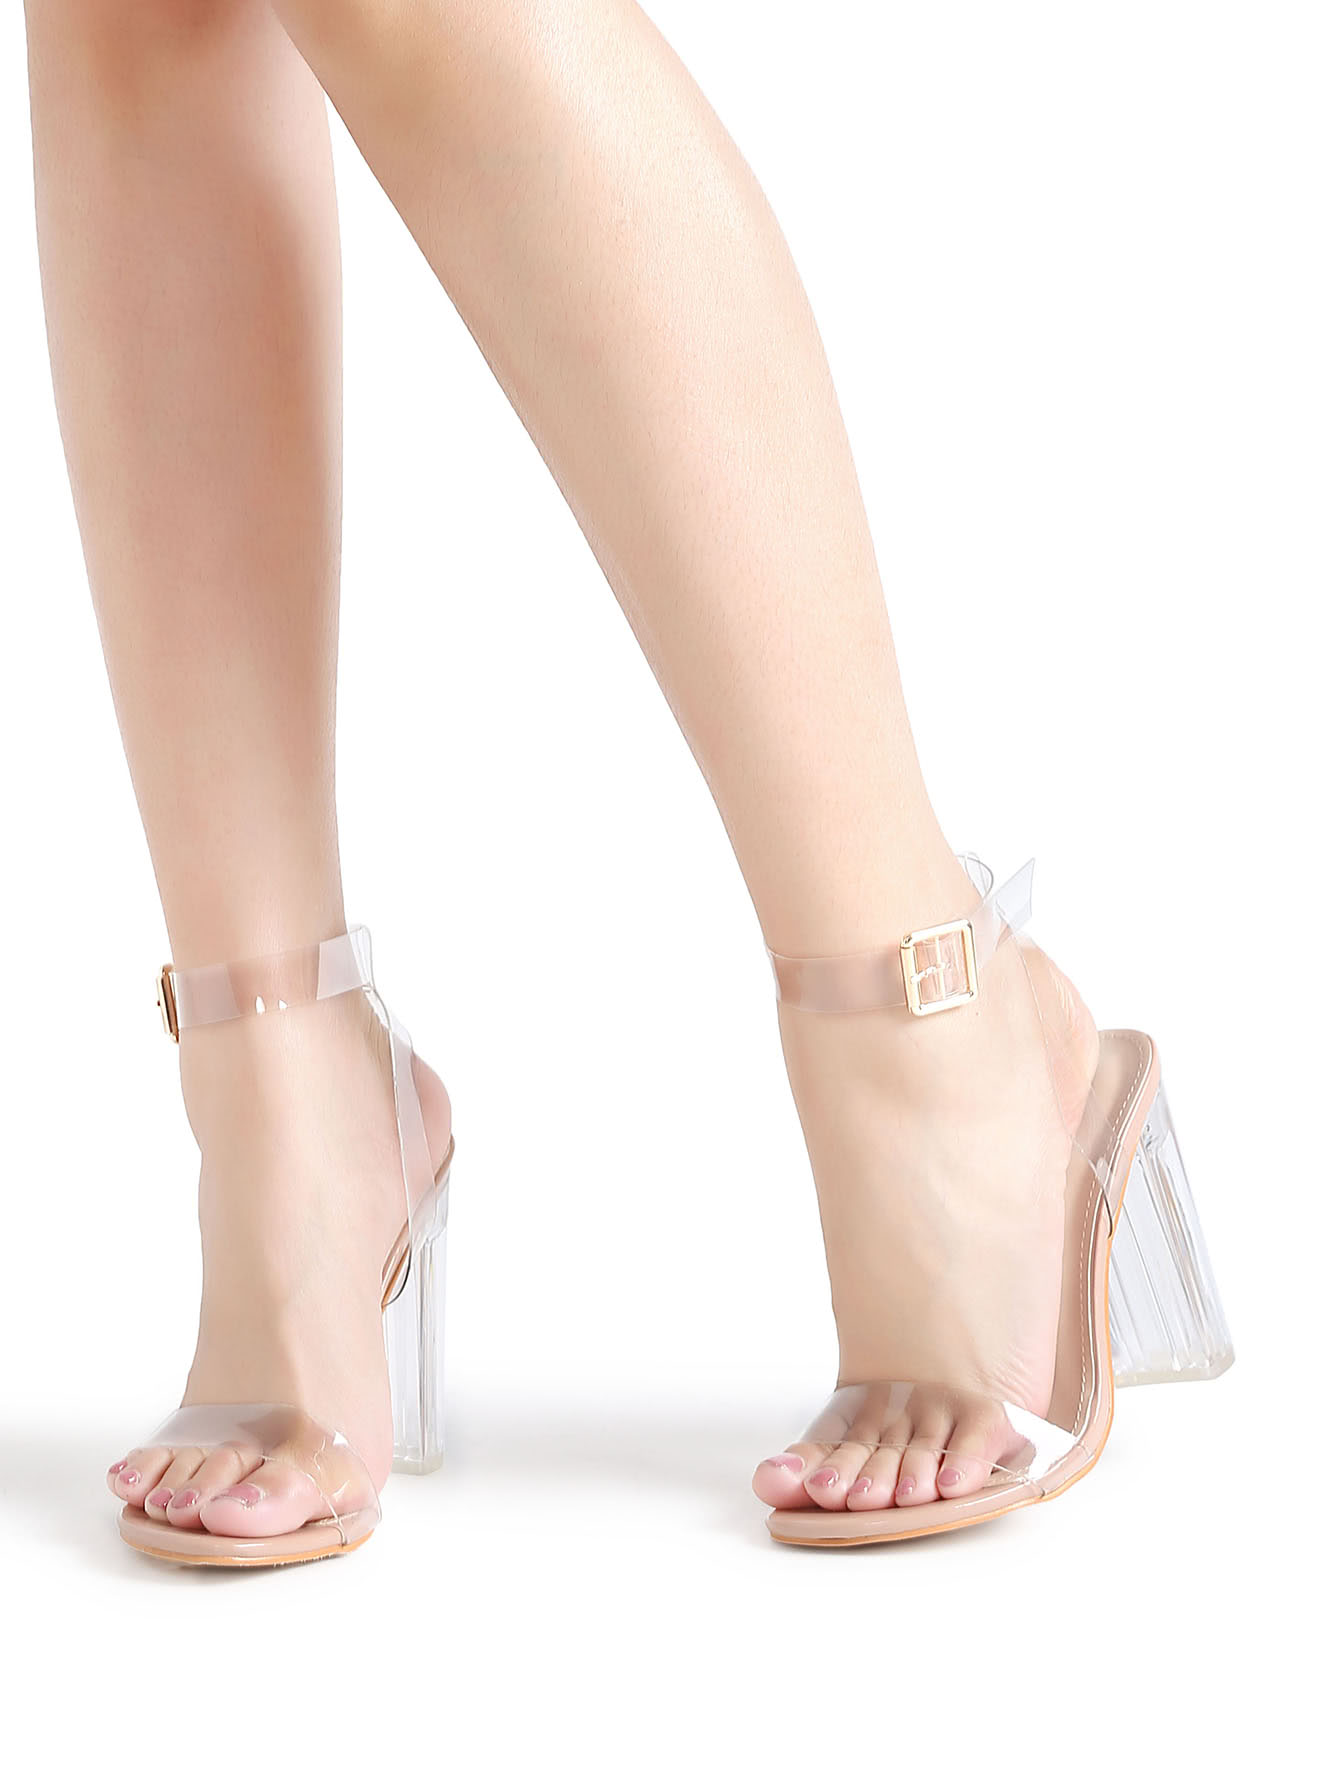 Corriee Womens Clear Ankle Strap Transparent Chunky High Heel Strappy Sandals Wedding Sandals Platform Shoes